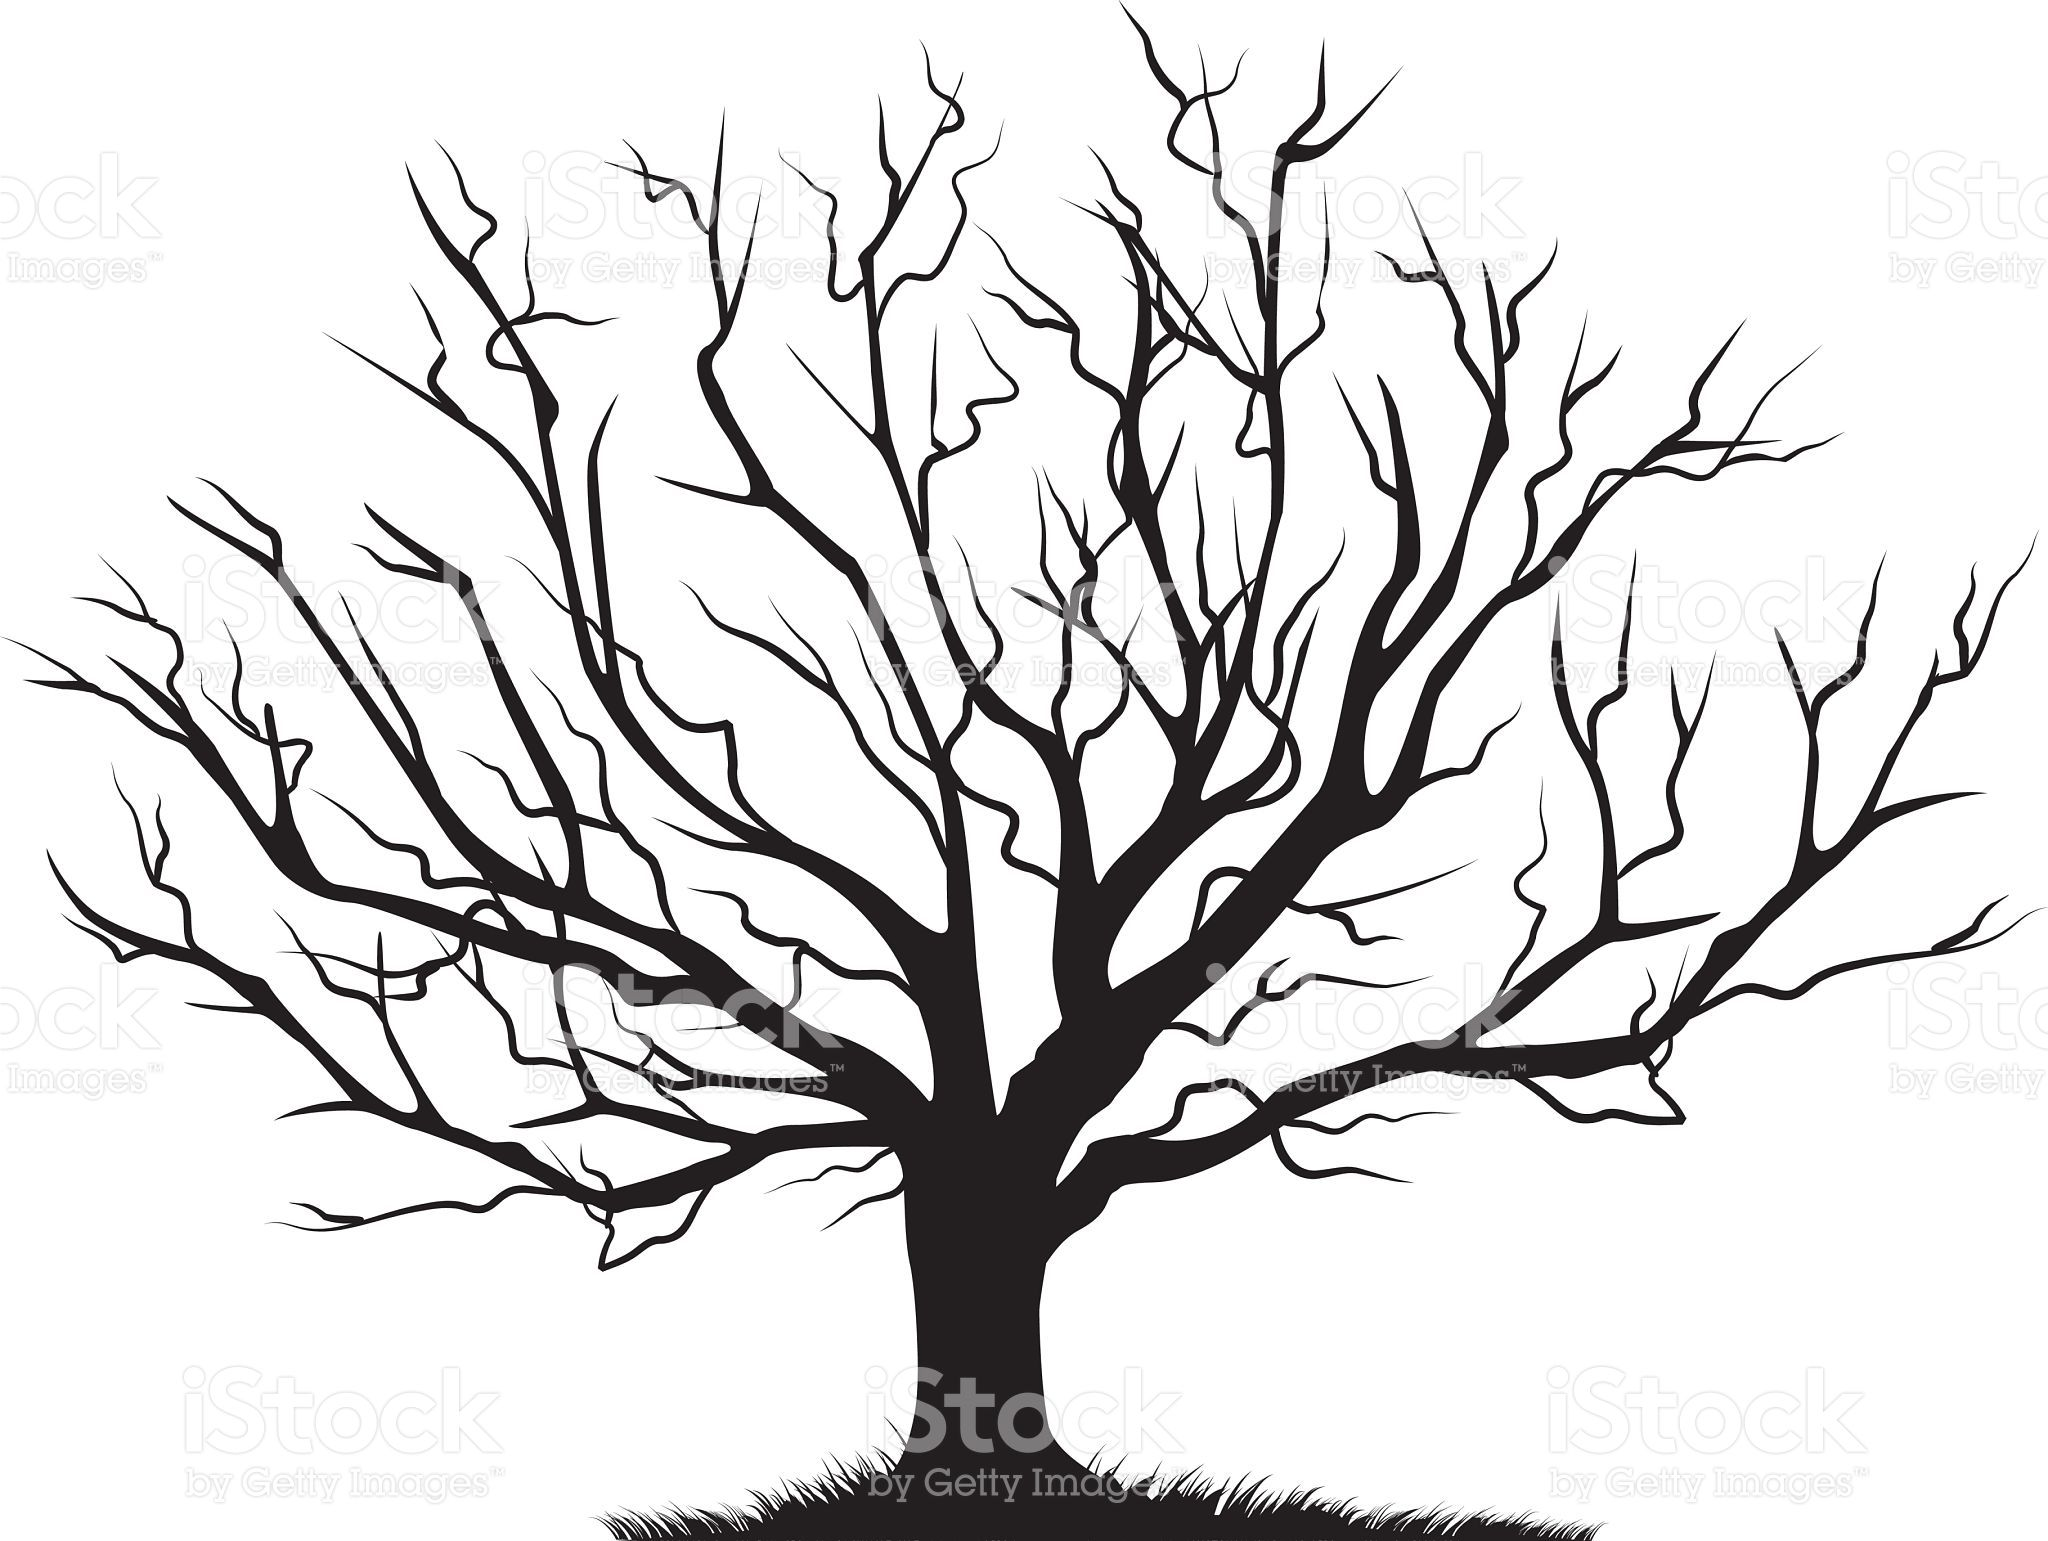 2048x1541 Oak Tree Trunk Clipart